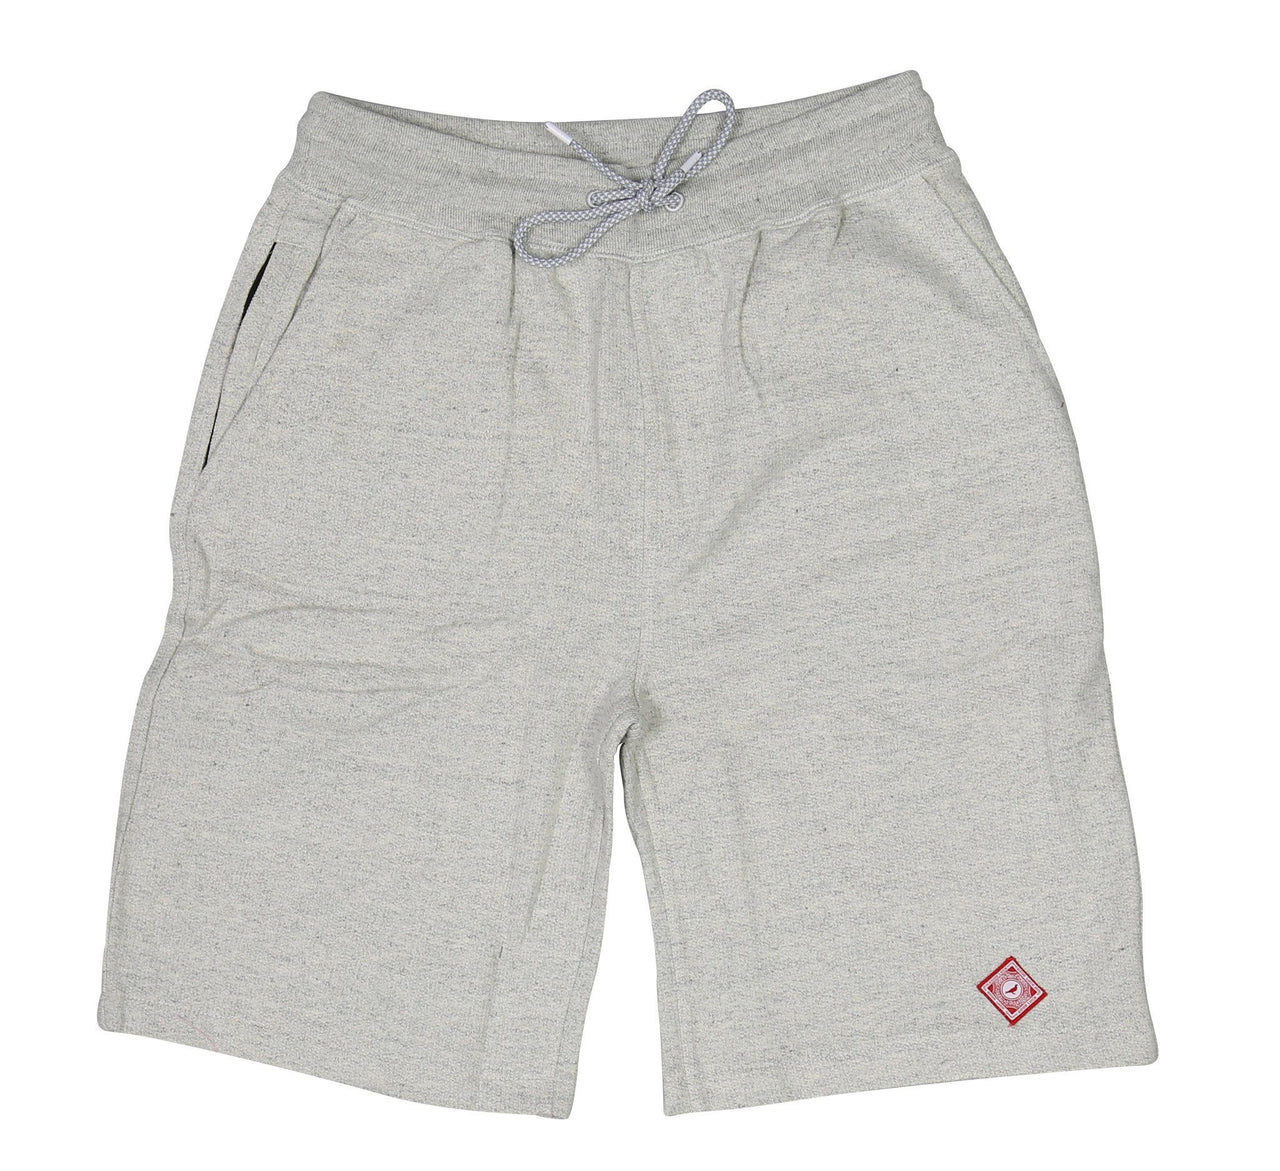 MAP SWEATSHORT, HEATHER